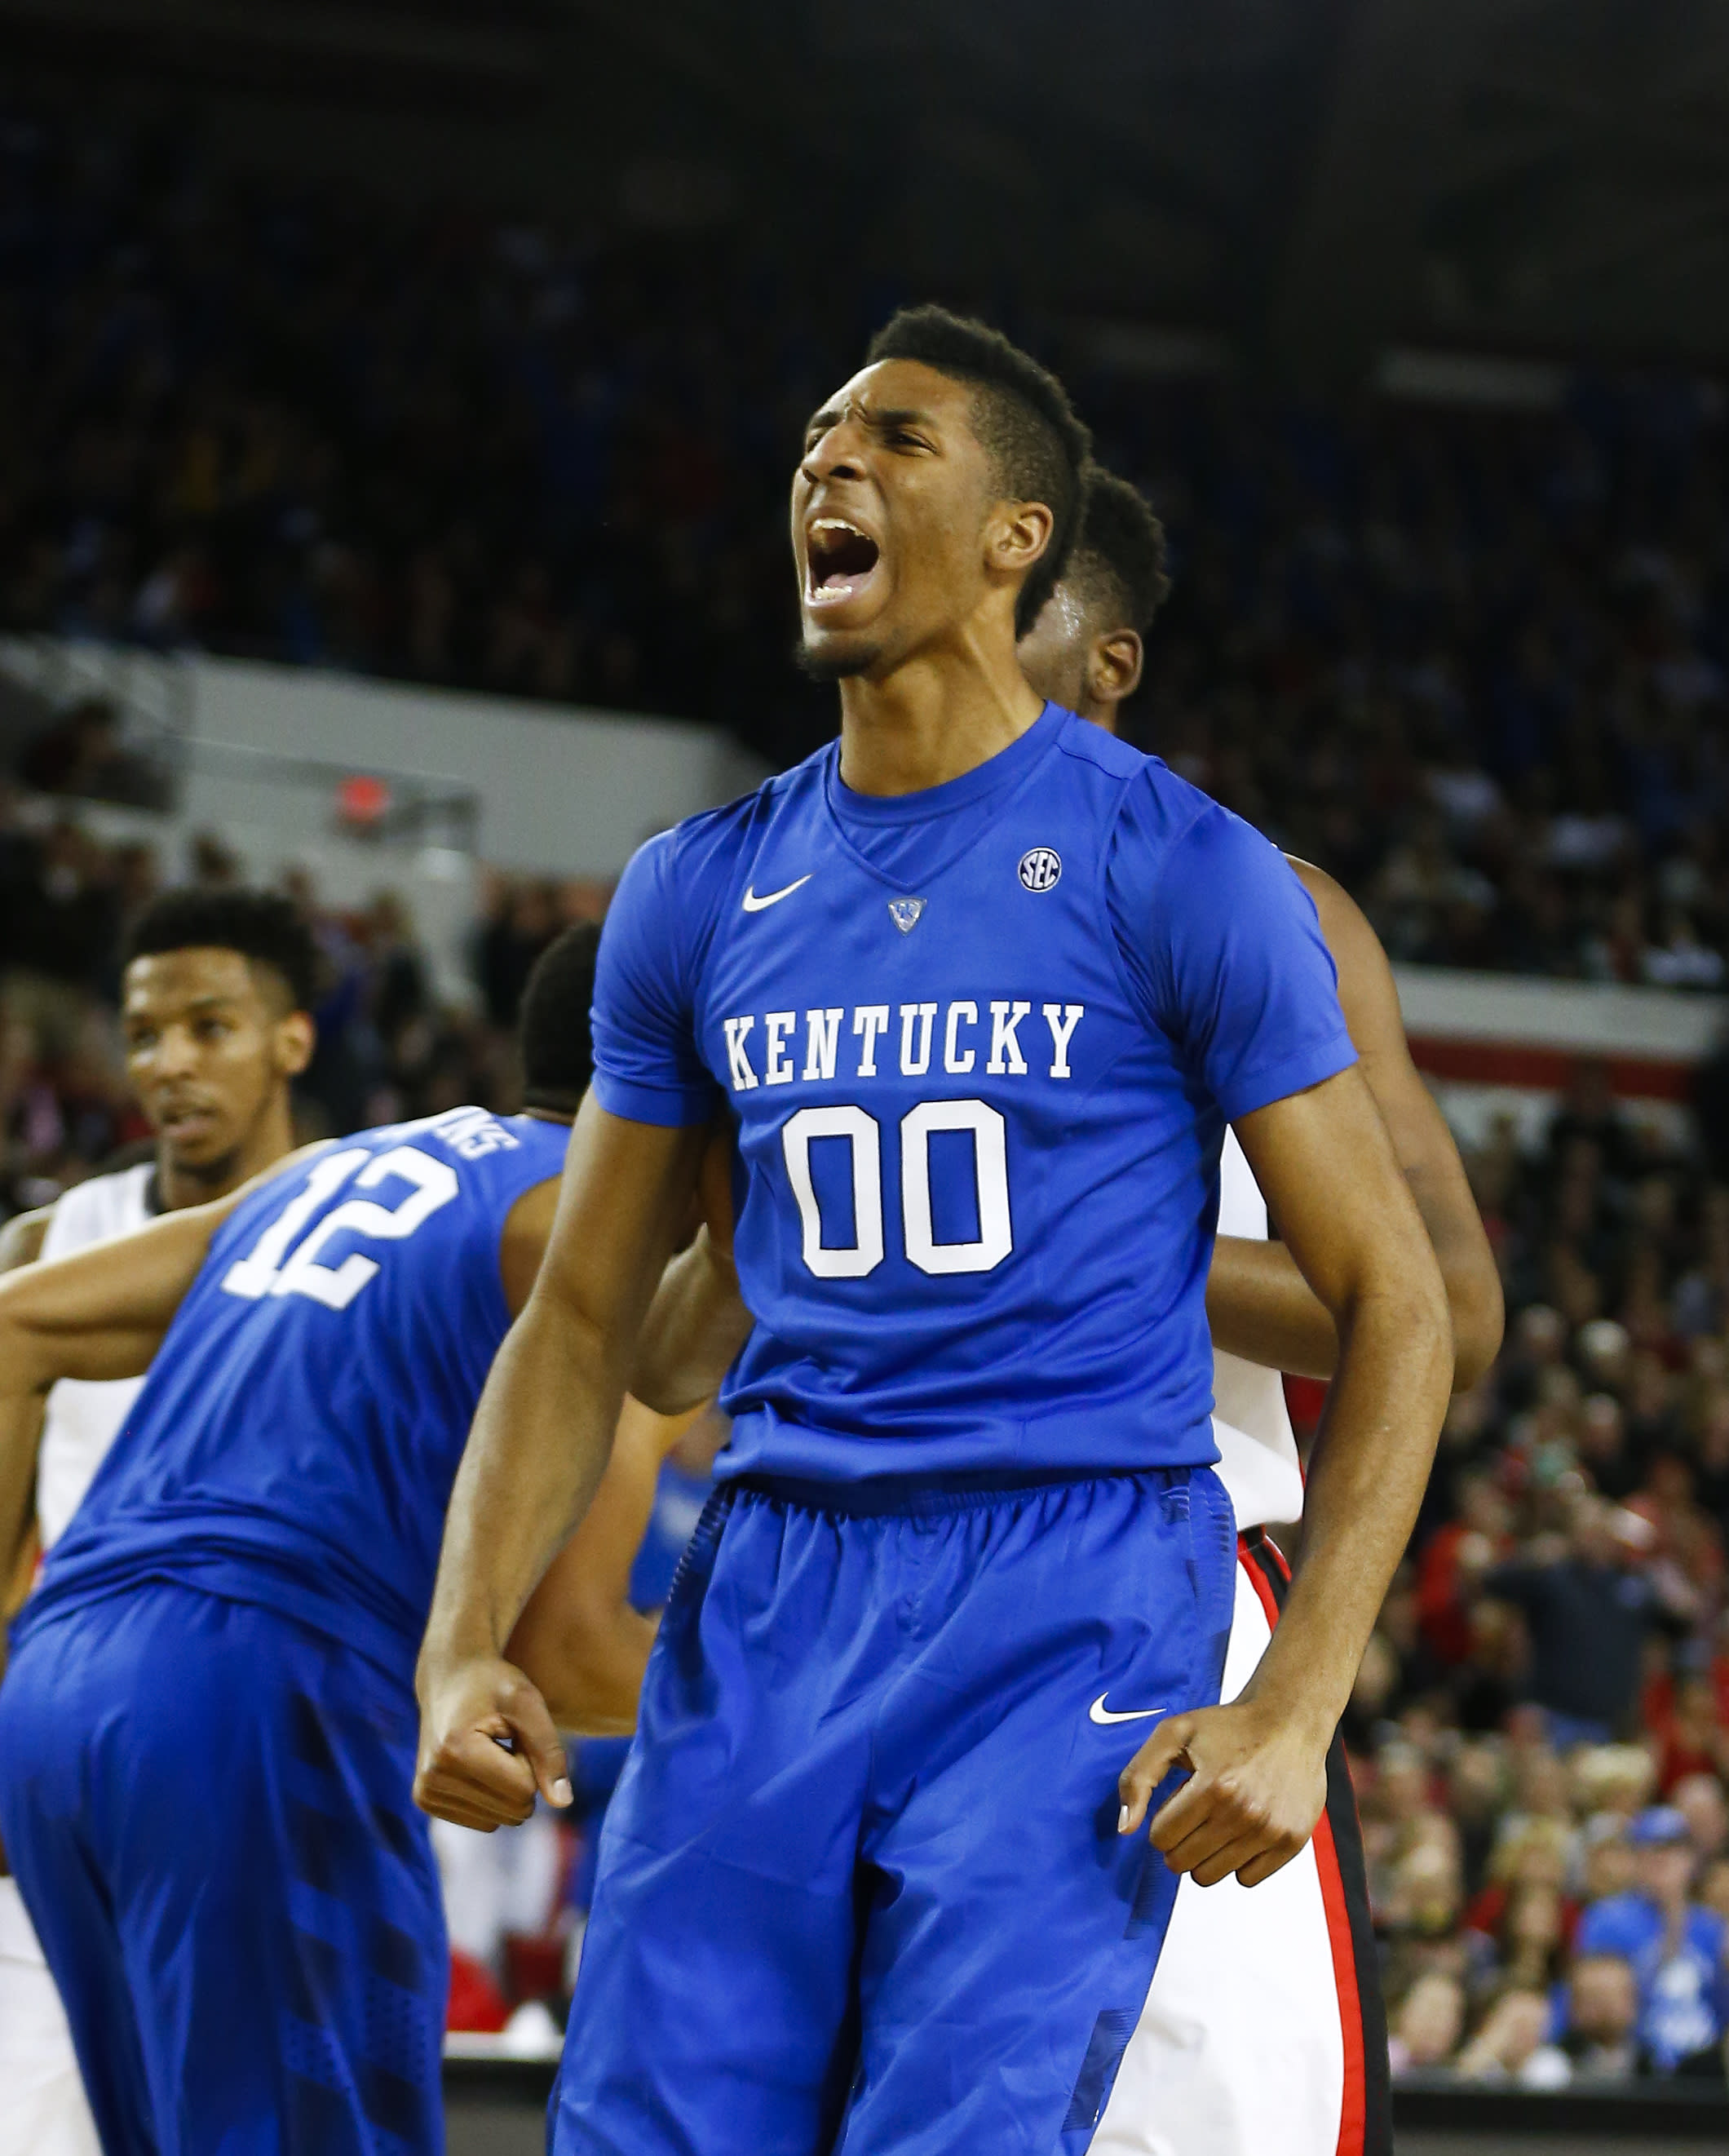 Top-ranked Kentucky makes it 30-0 with tight win at Georgia